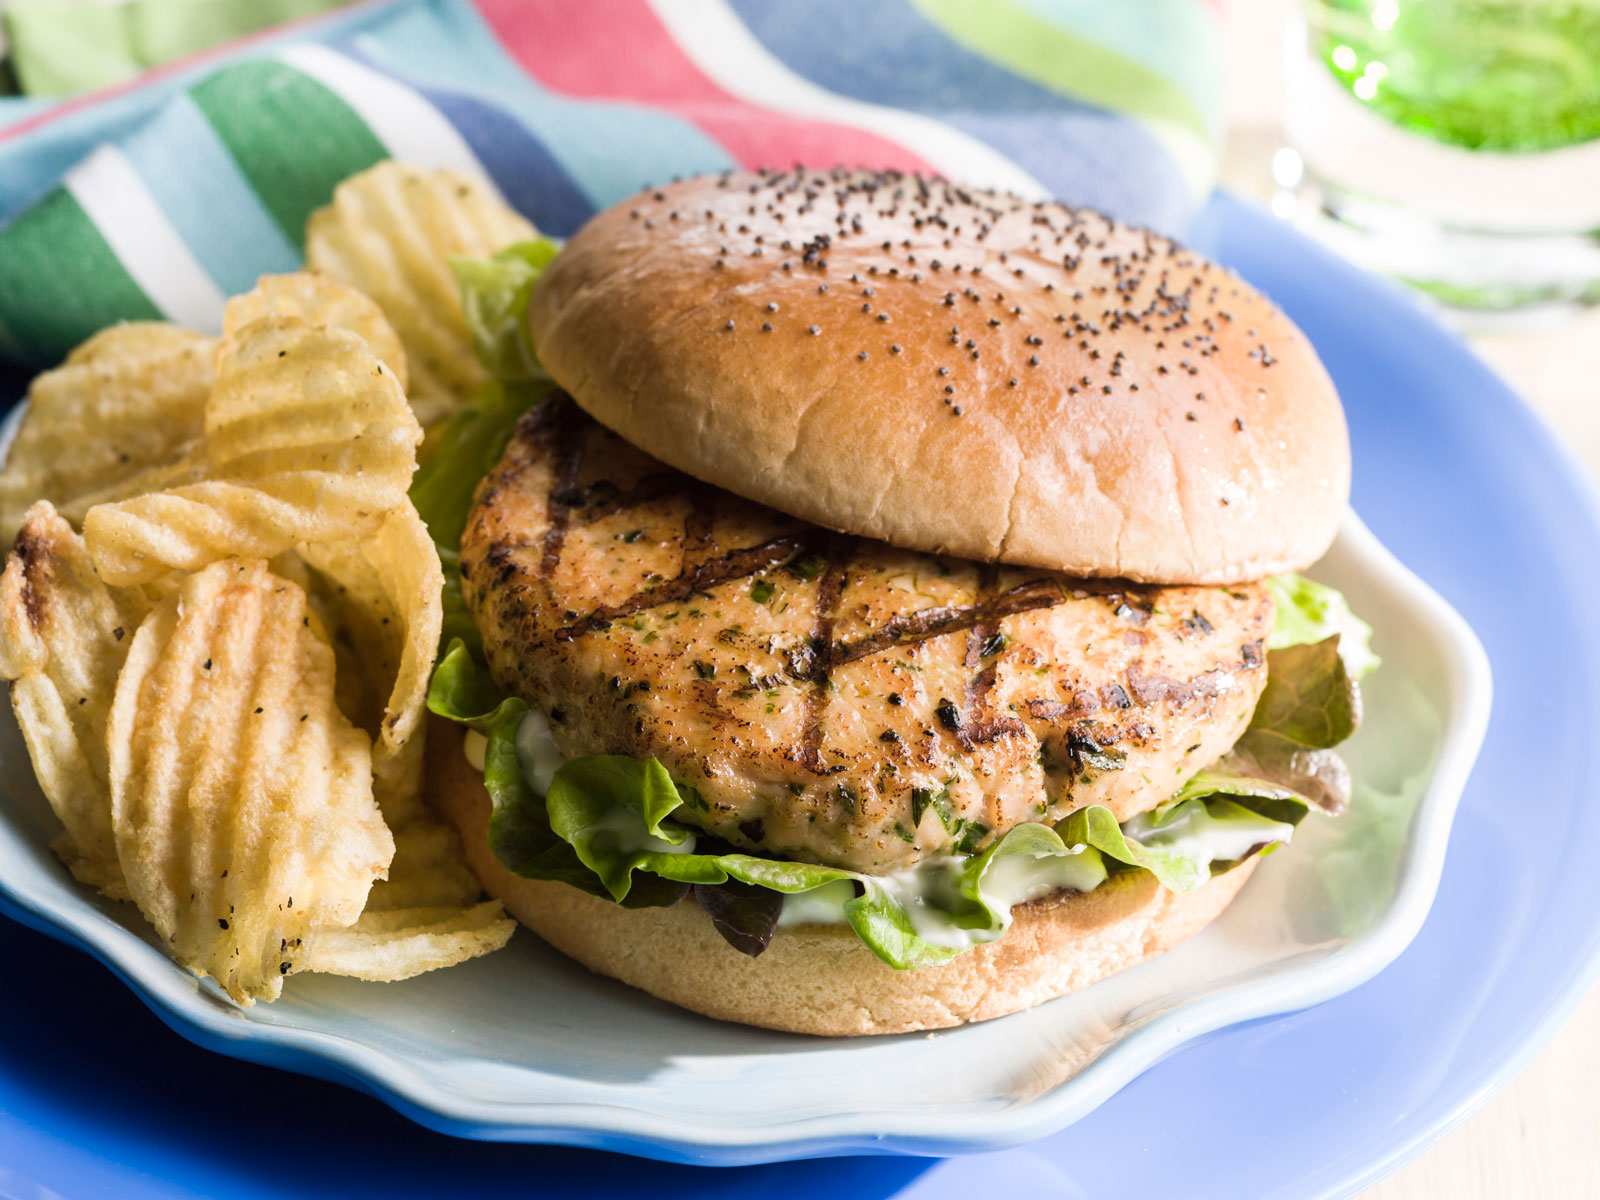 vegan-salmon-burger-FT-BLOG0418.jpg